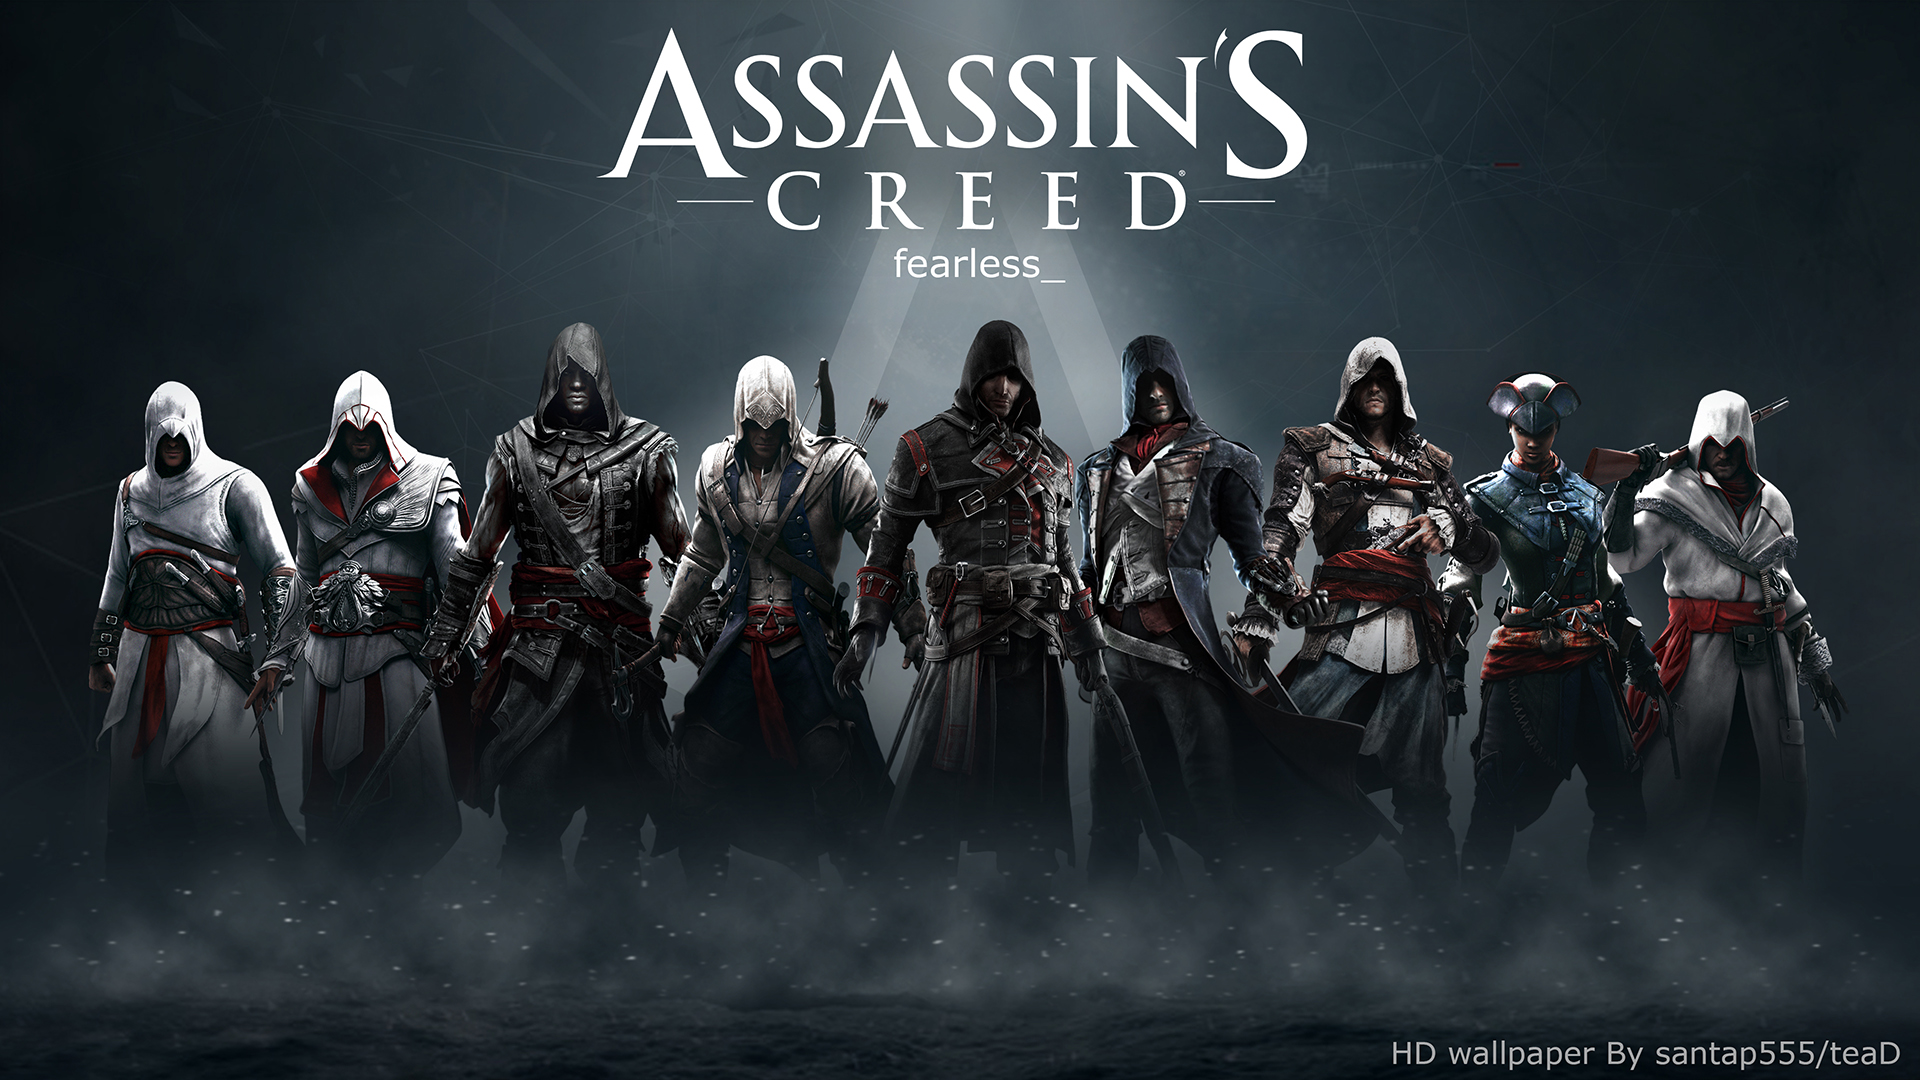 Assassins Creed 2 hd Wallpaper images 1920x1080